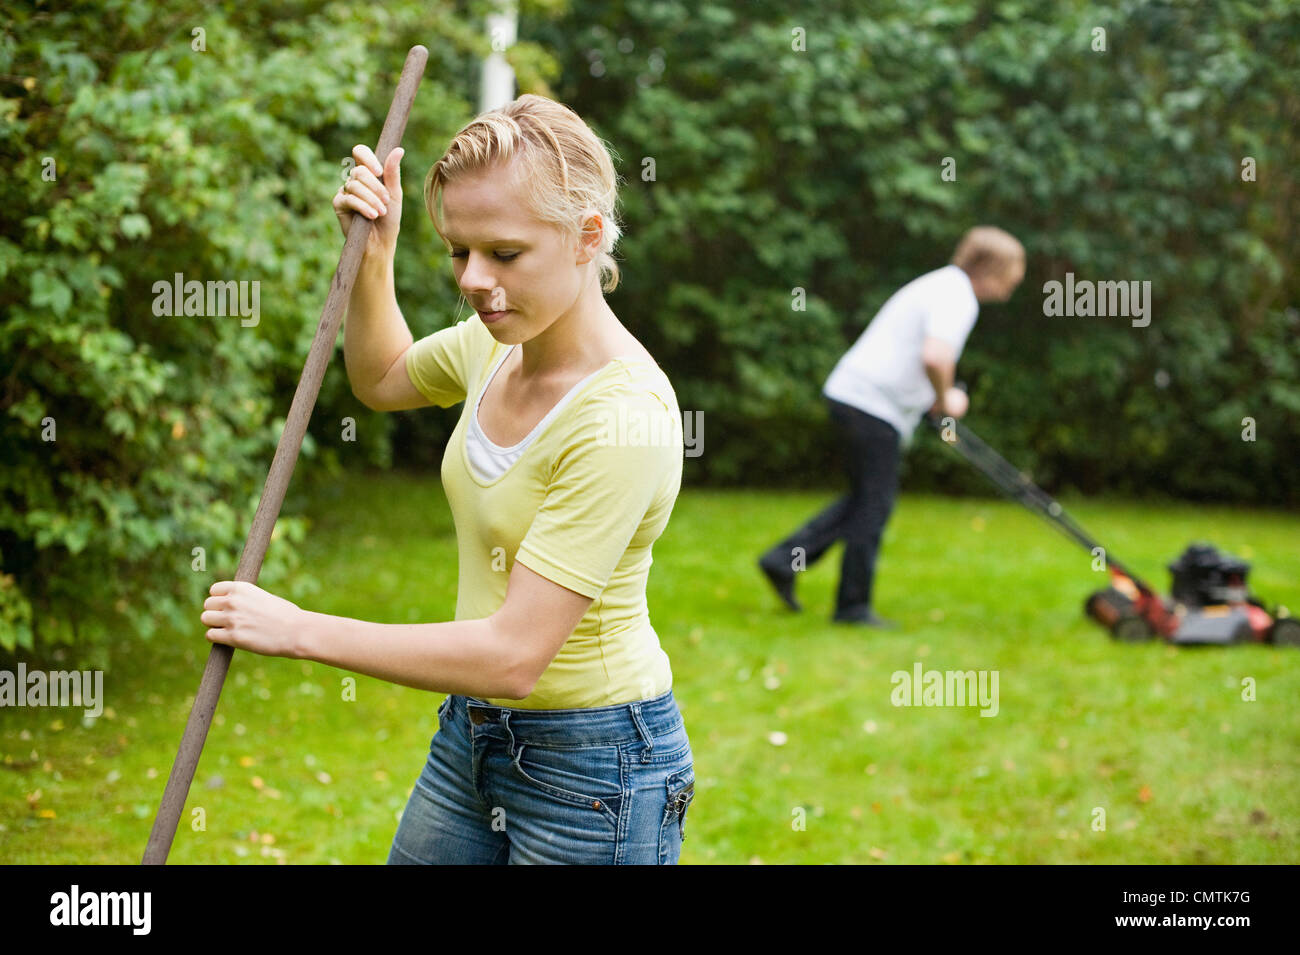 Woman with stick and man using manual lawn mower to cut grass - Stock Image